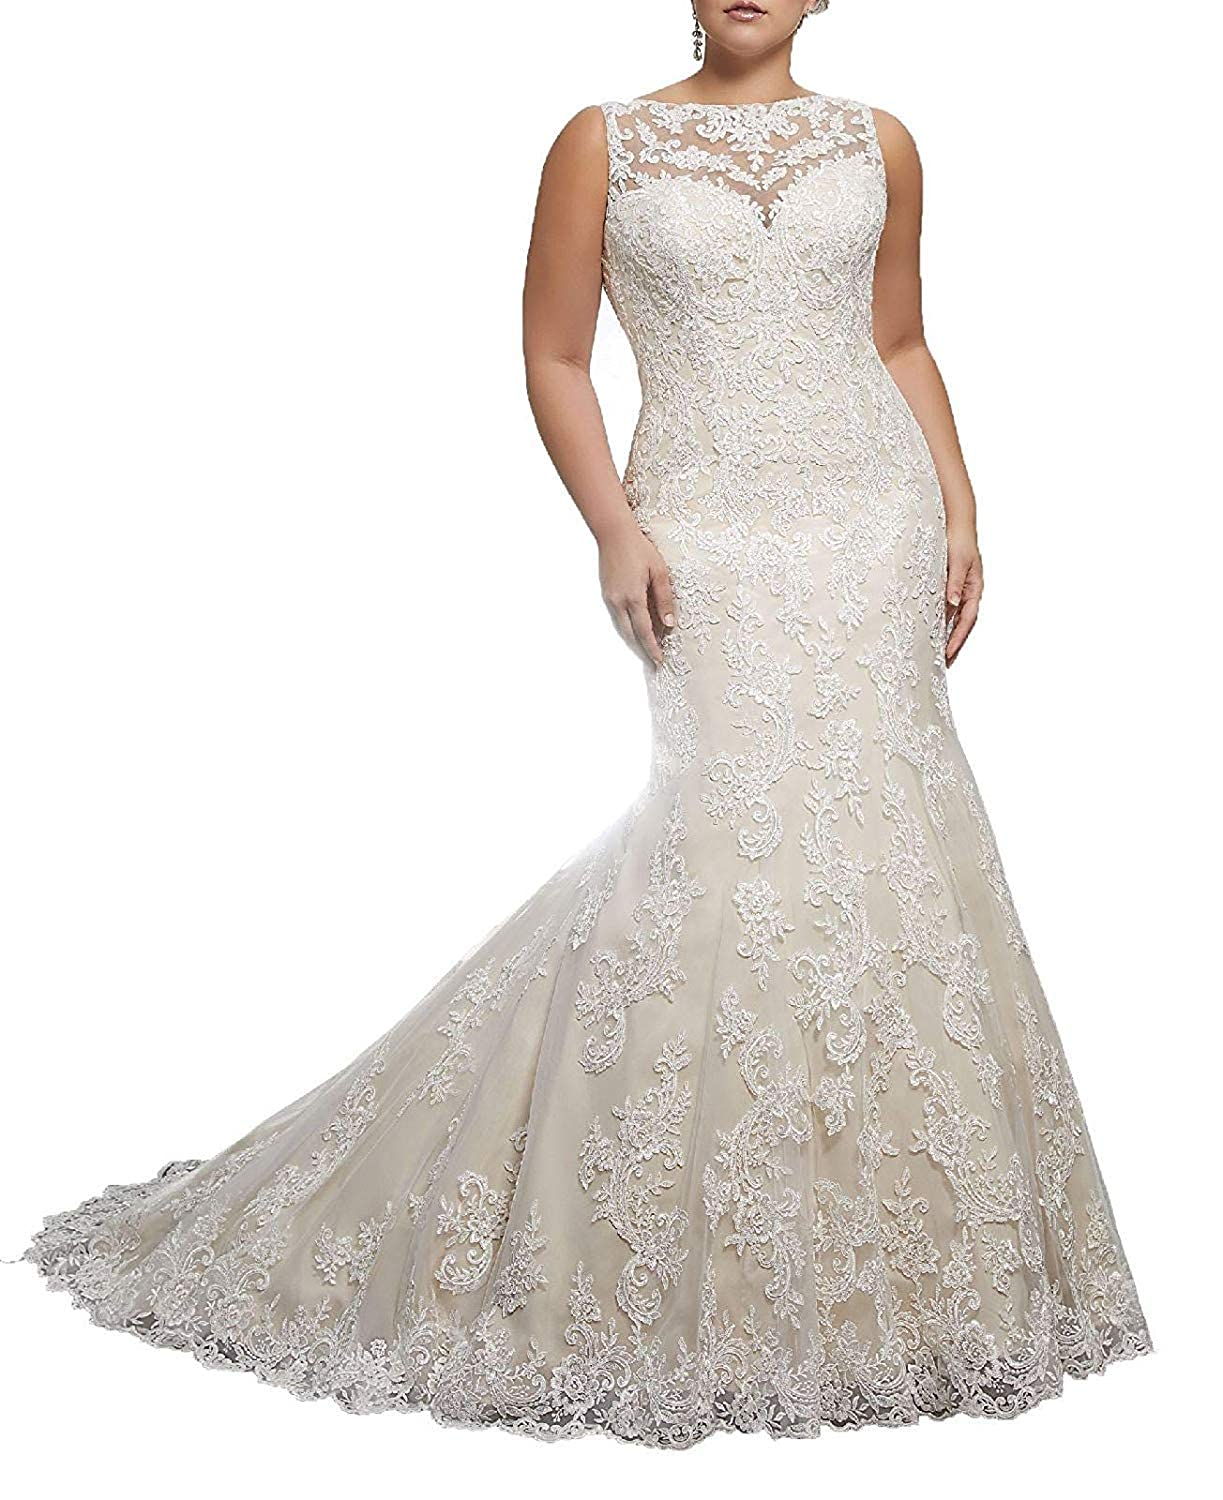 Ivory PromQueen Wedding Dress Lace Mermaid Long Tail Wedding Party Dress Applique Sweetheart Bridal Gown